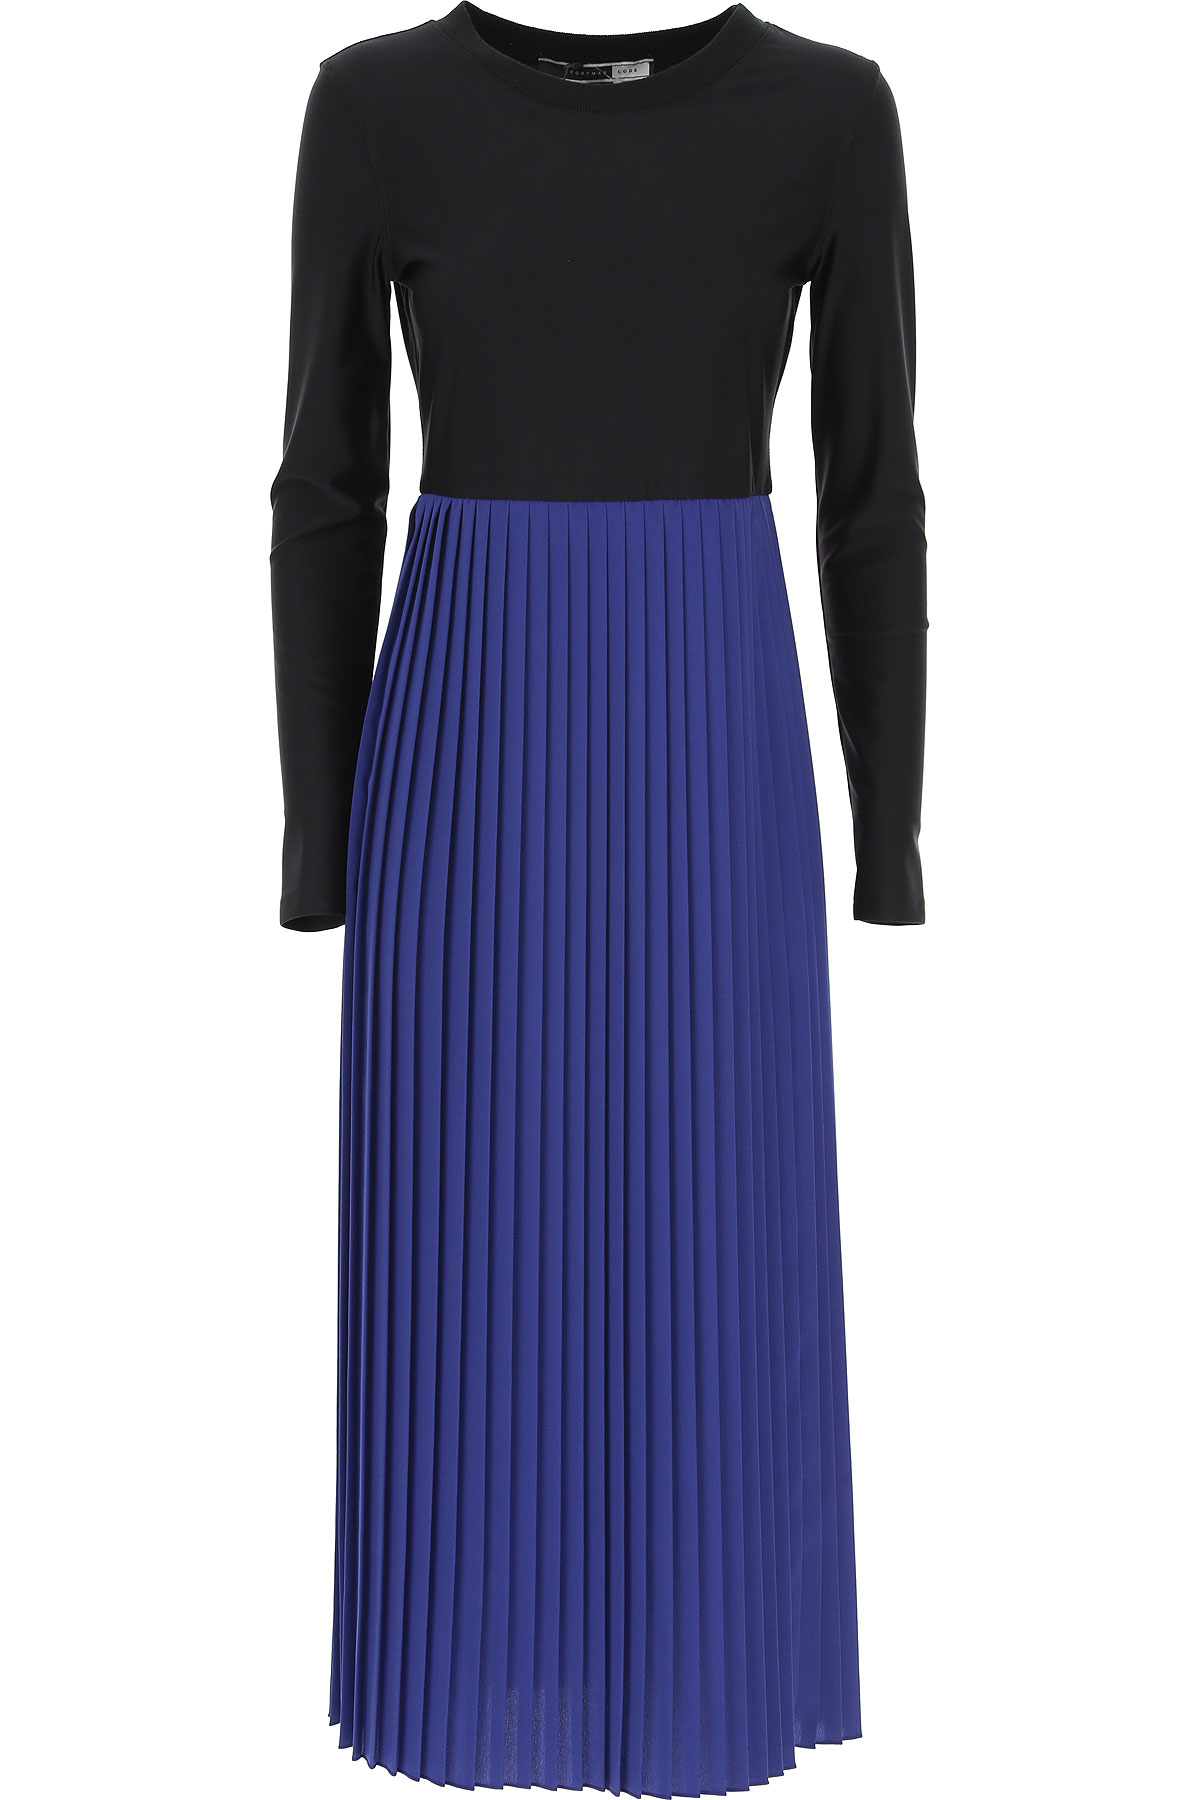 Image of SportMax Dress for Women, Evening Cocktail Party, Bluette, polyamide, 2017, 4 6 8